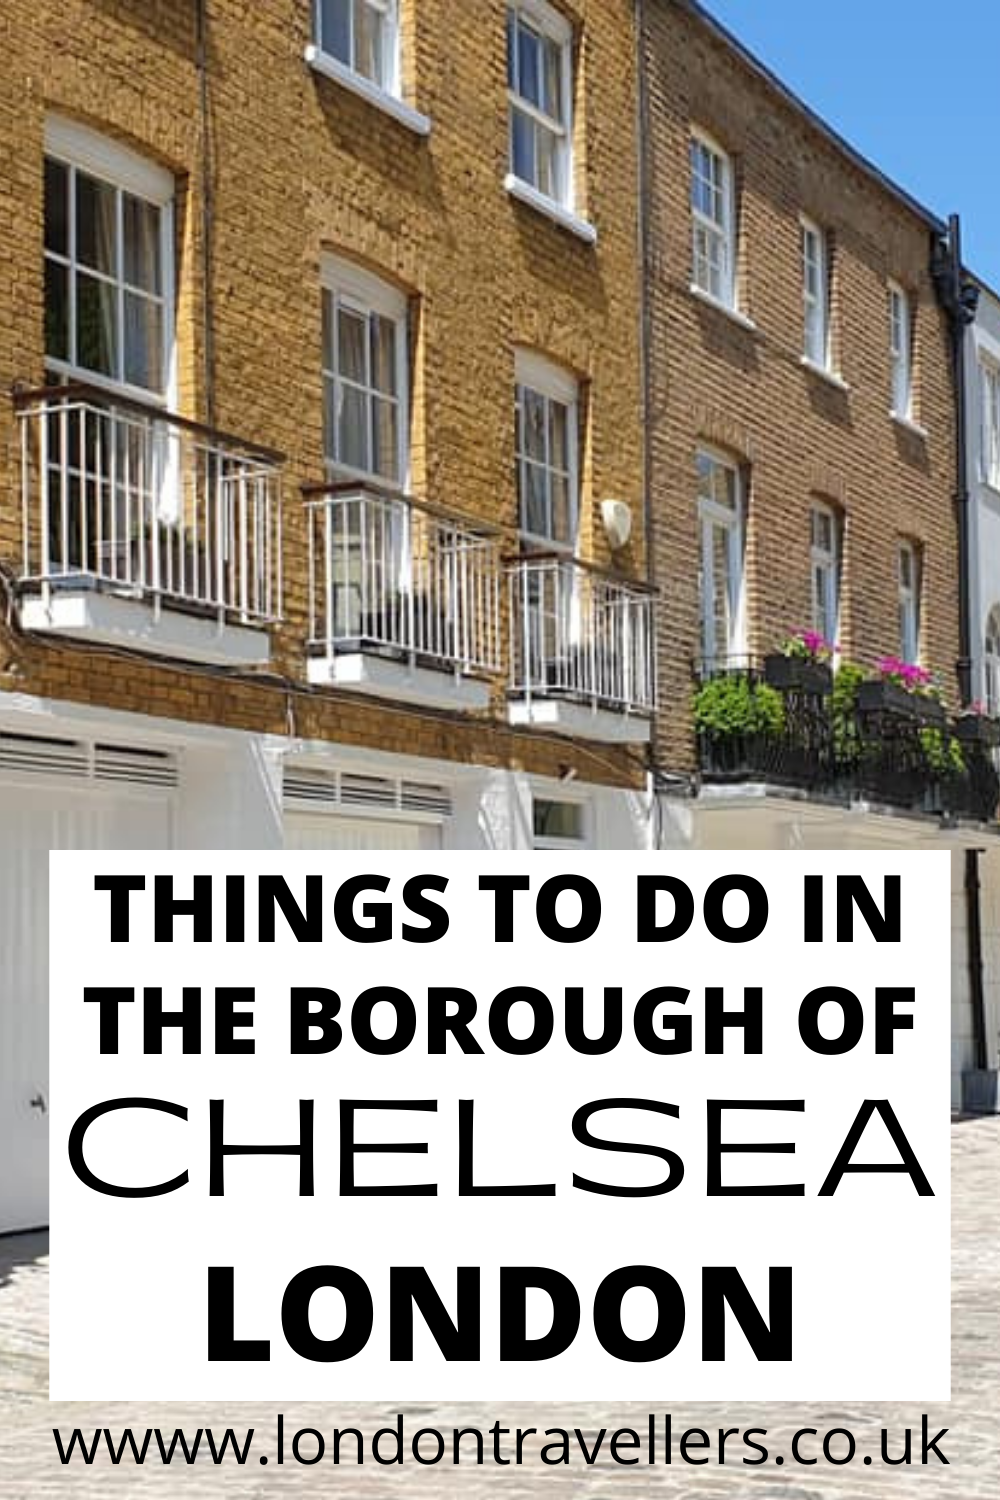 Things to do in Chelsea, London